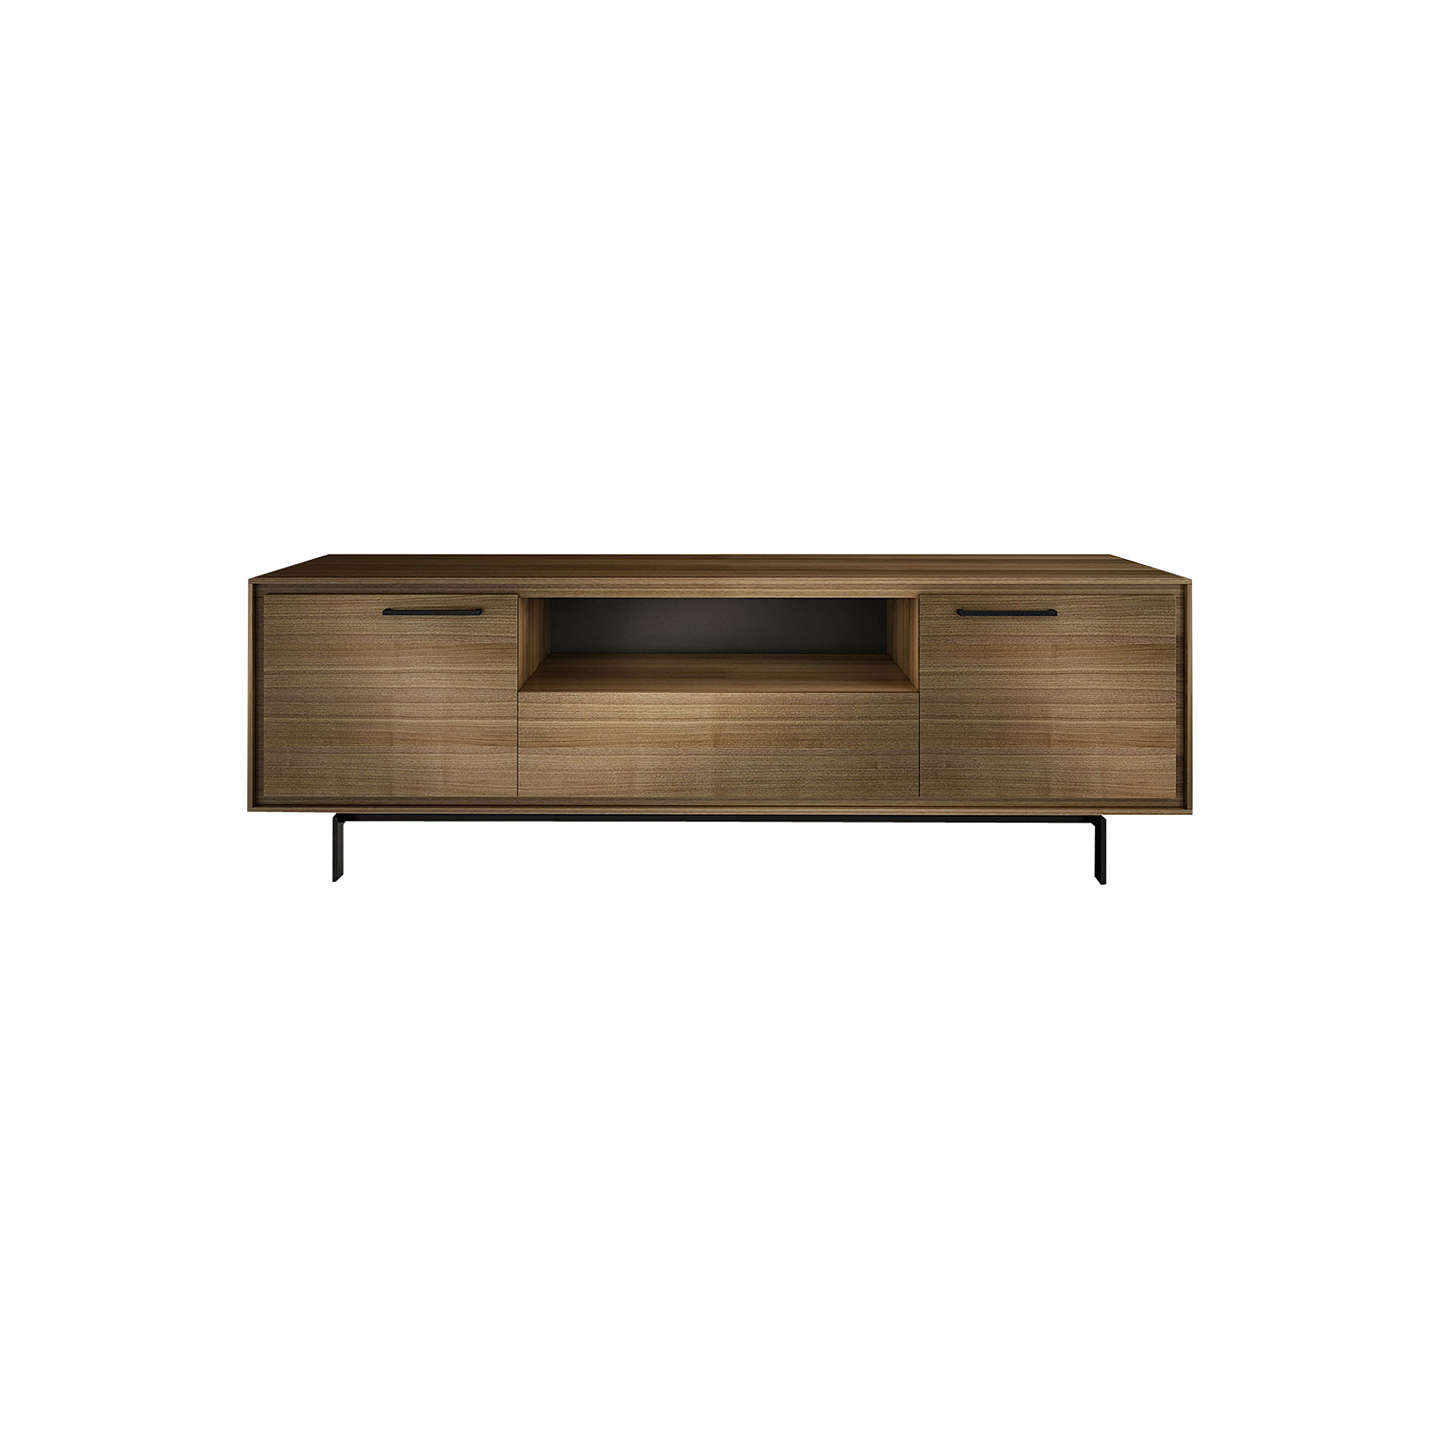 "BuyBDI Signal 8329 TV Stand for TVs up to 85"", Natural Walnut Online at johnlewis.com"